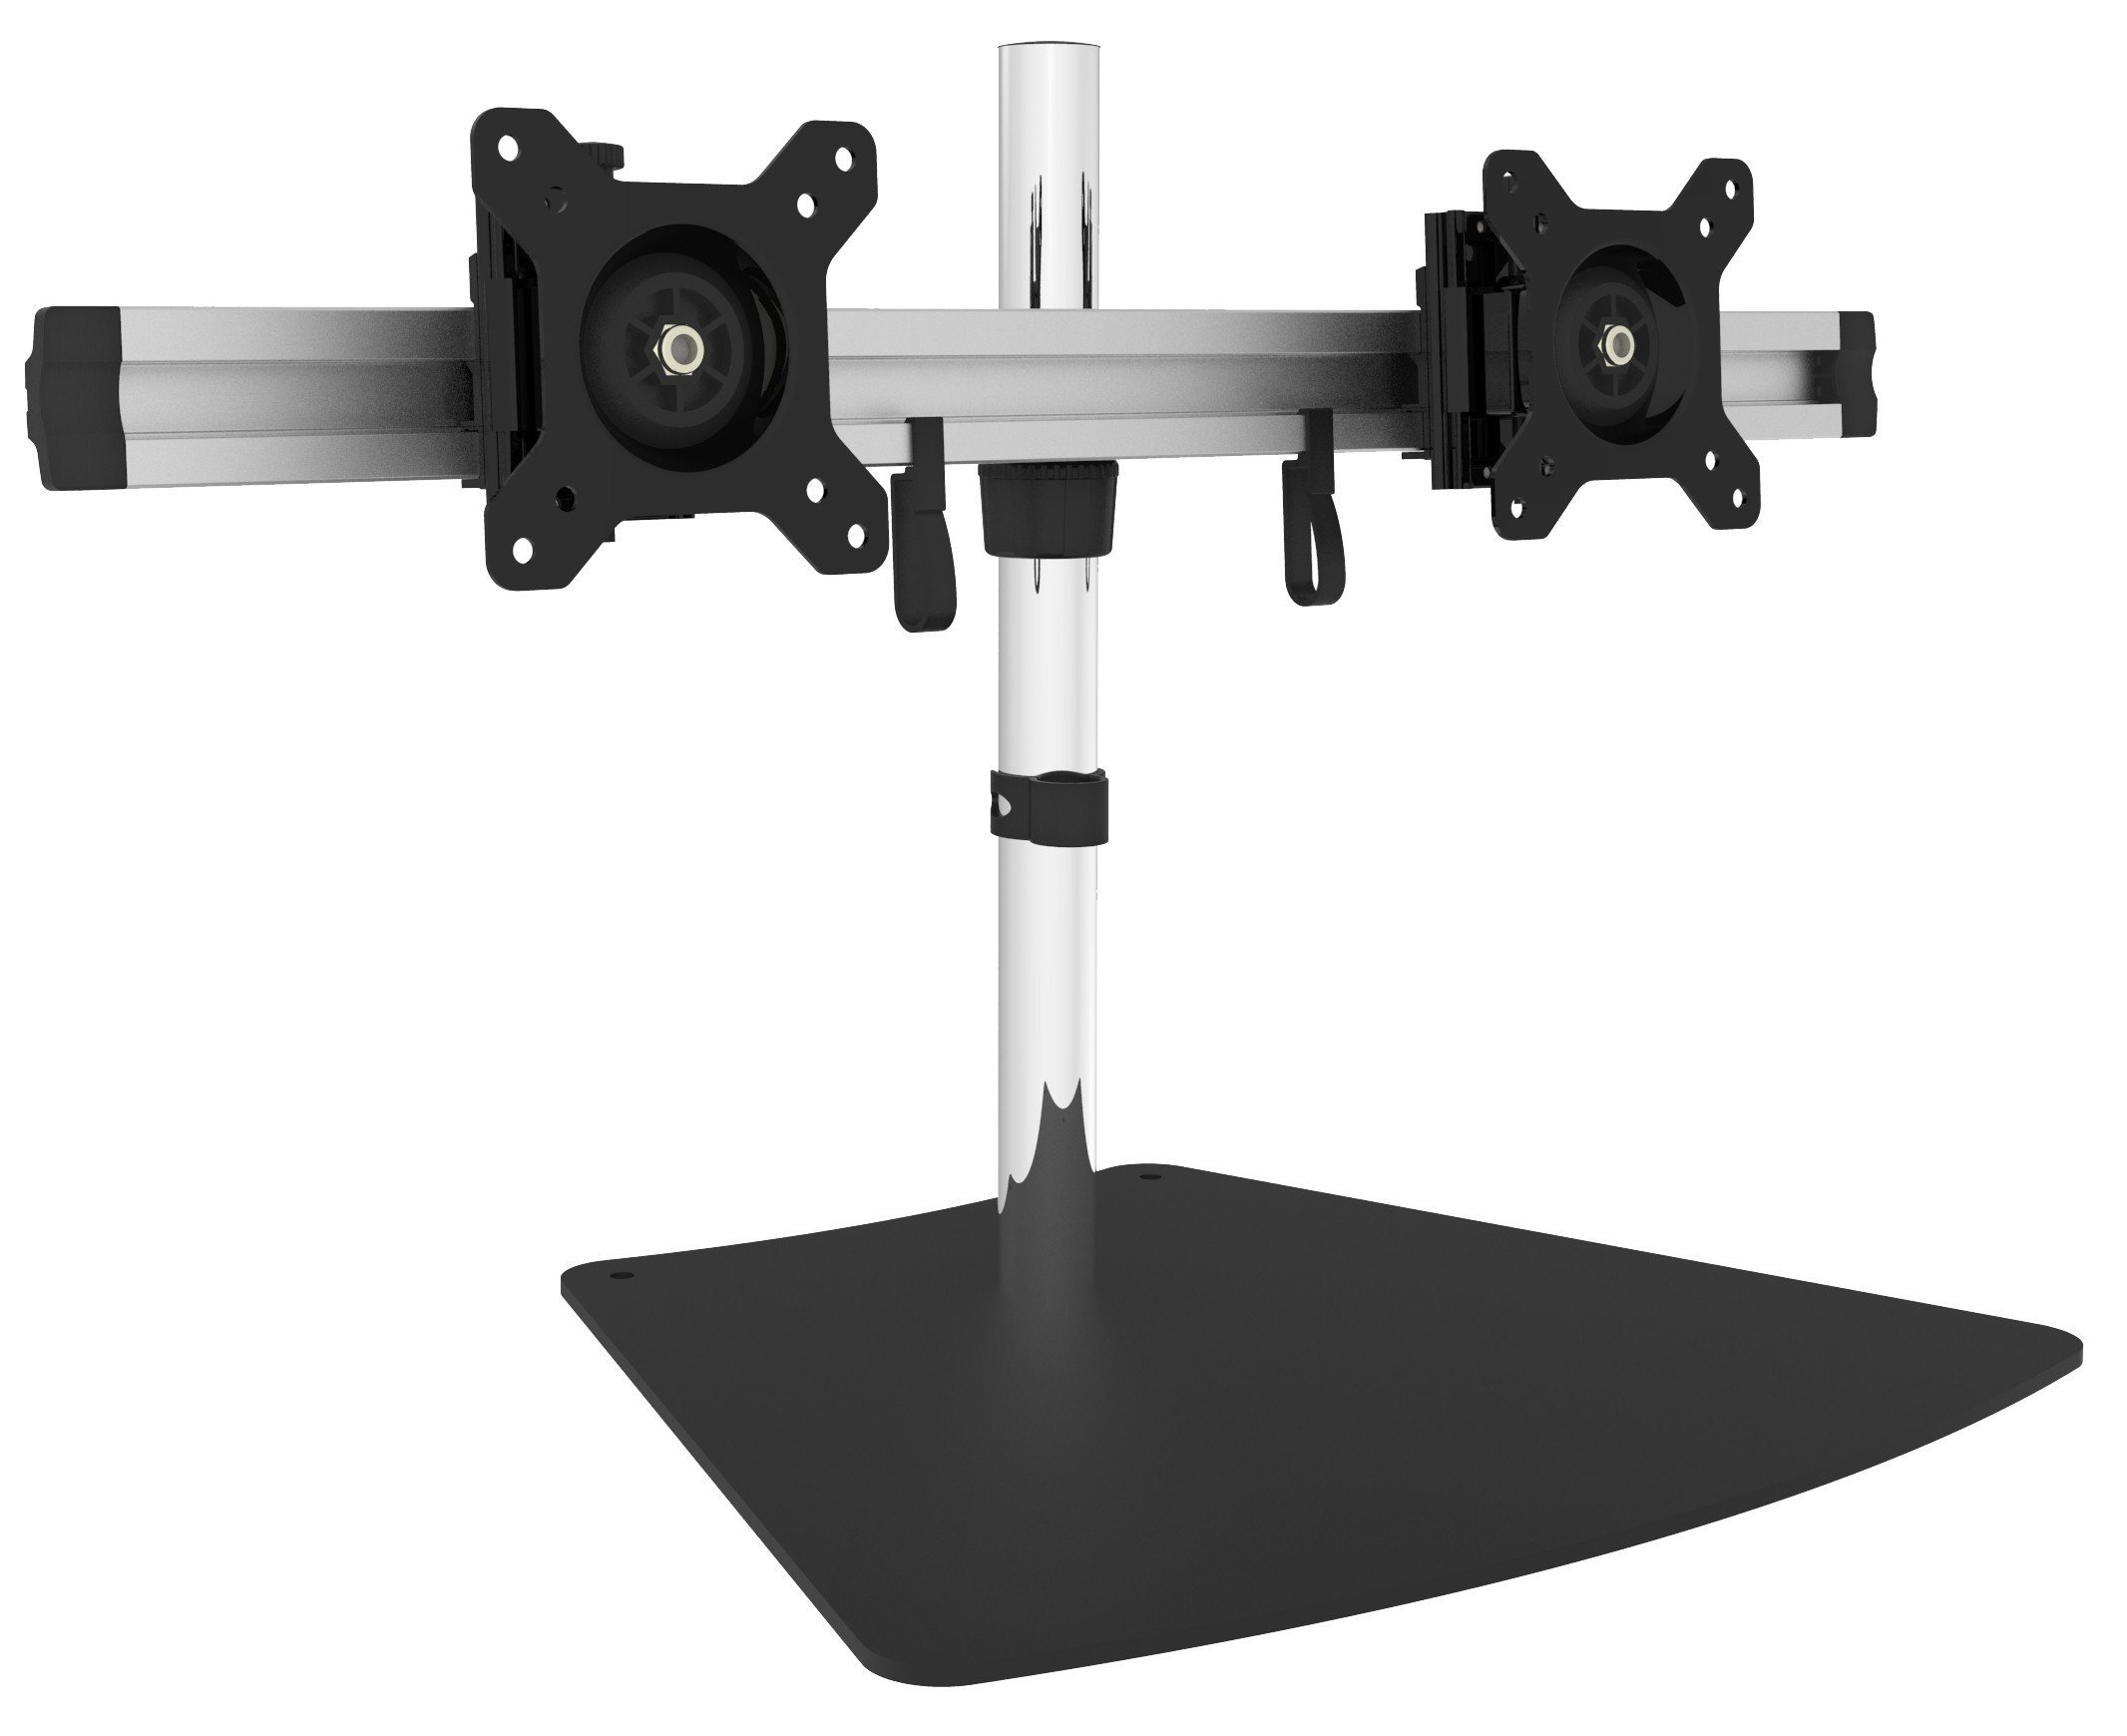 SIIG Premium Aluminum Dual Monitor Stand - 2 Monitors 13'' to 27'' Up To 17.6 lbs VESA 75 and 100 (CE-MT2011-S1) by SIIG